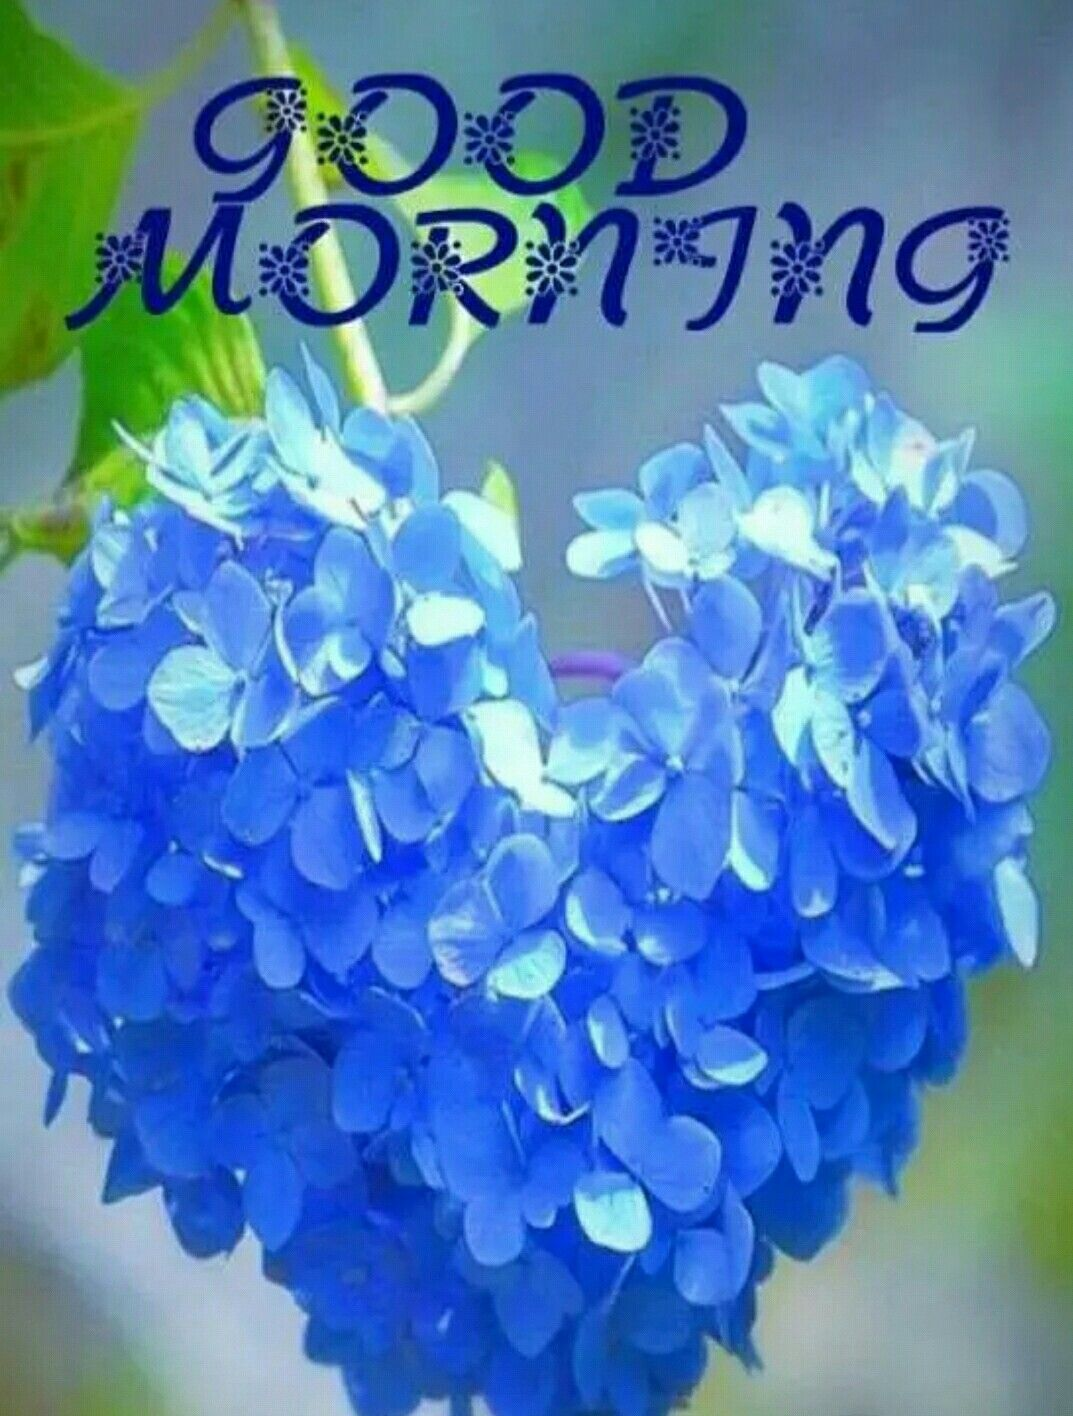 Pin By Marina Otti On Good Morning In 2020 Good Morning Greetings Good Morning Flowers Good Morning Images Flowers